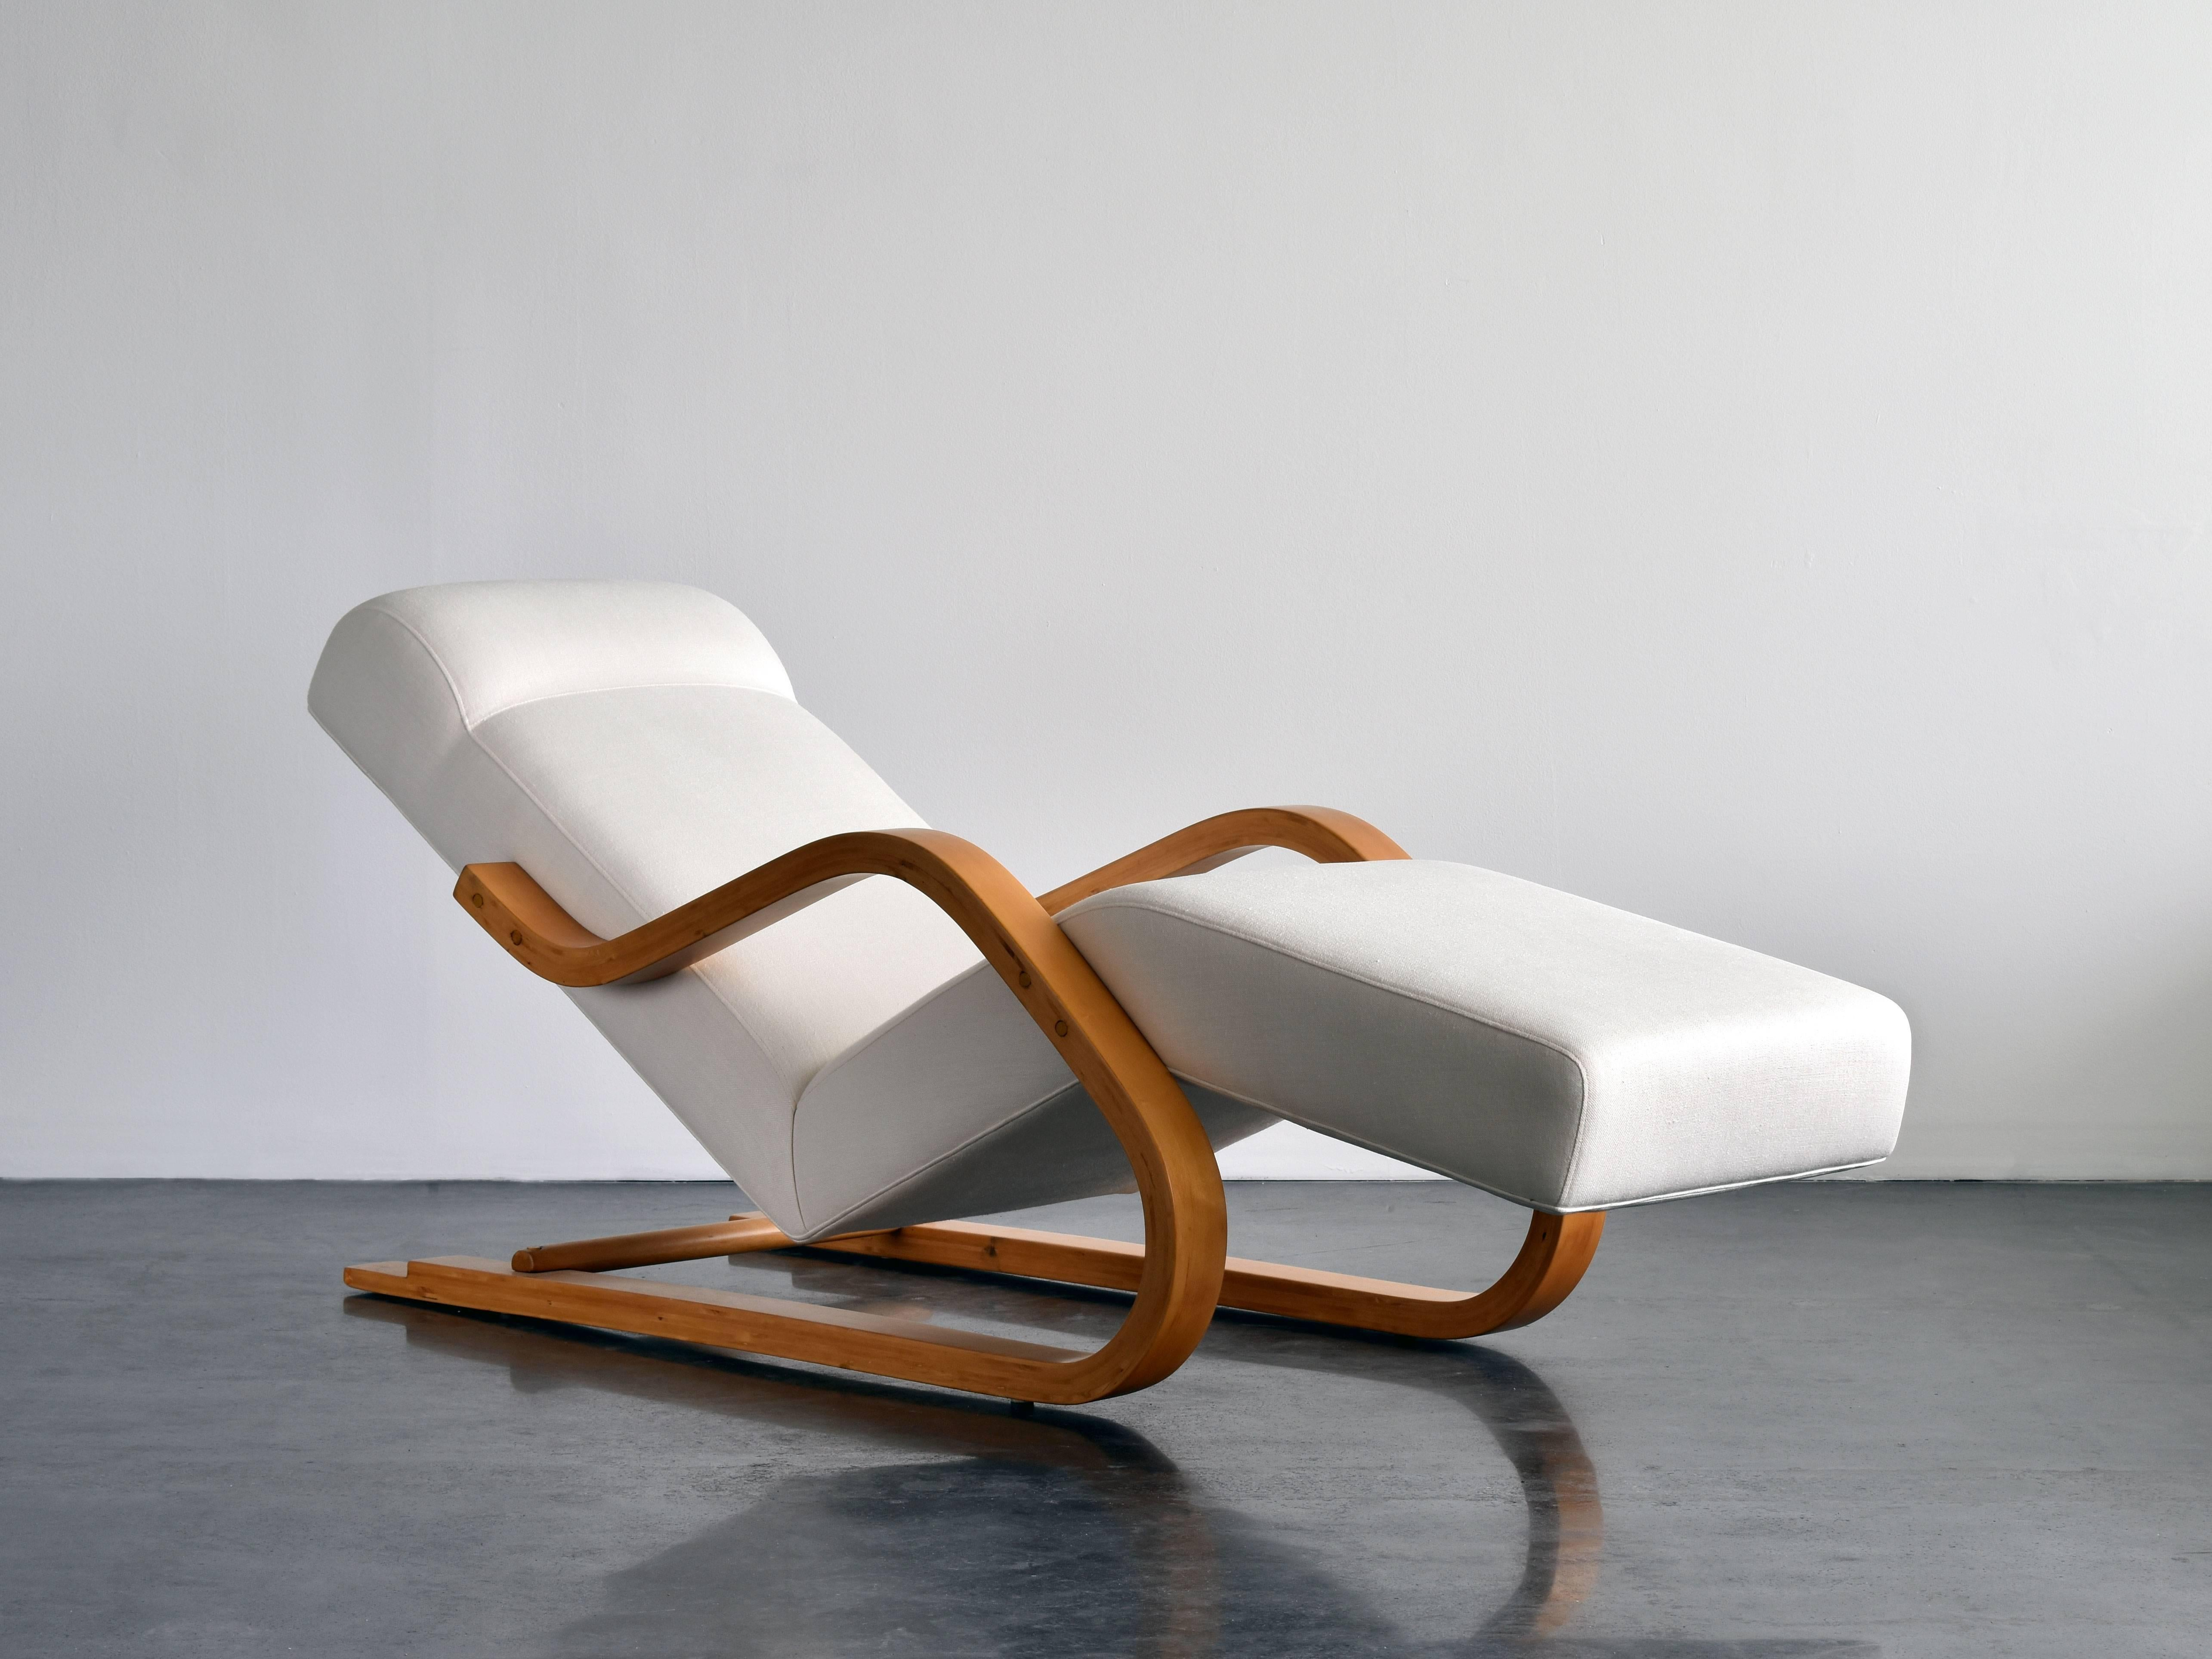 Rare In And Cantilevered Chaise 1937 Alvar AaltoEarly White FabricCirca CdxBore